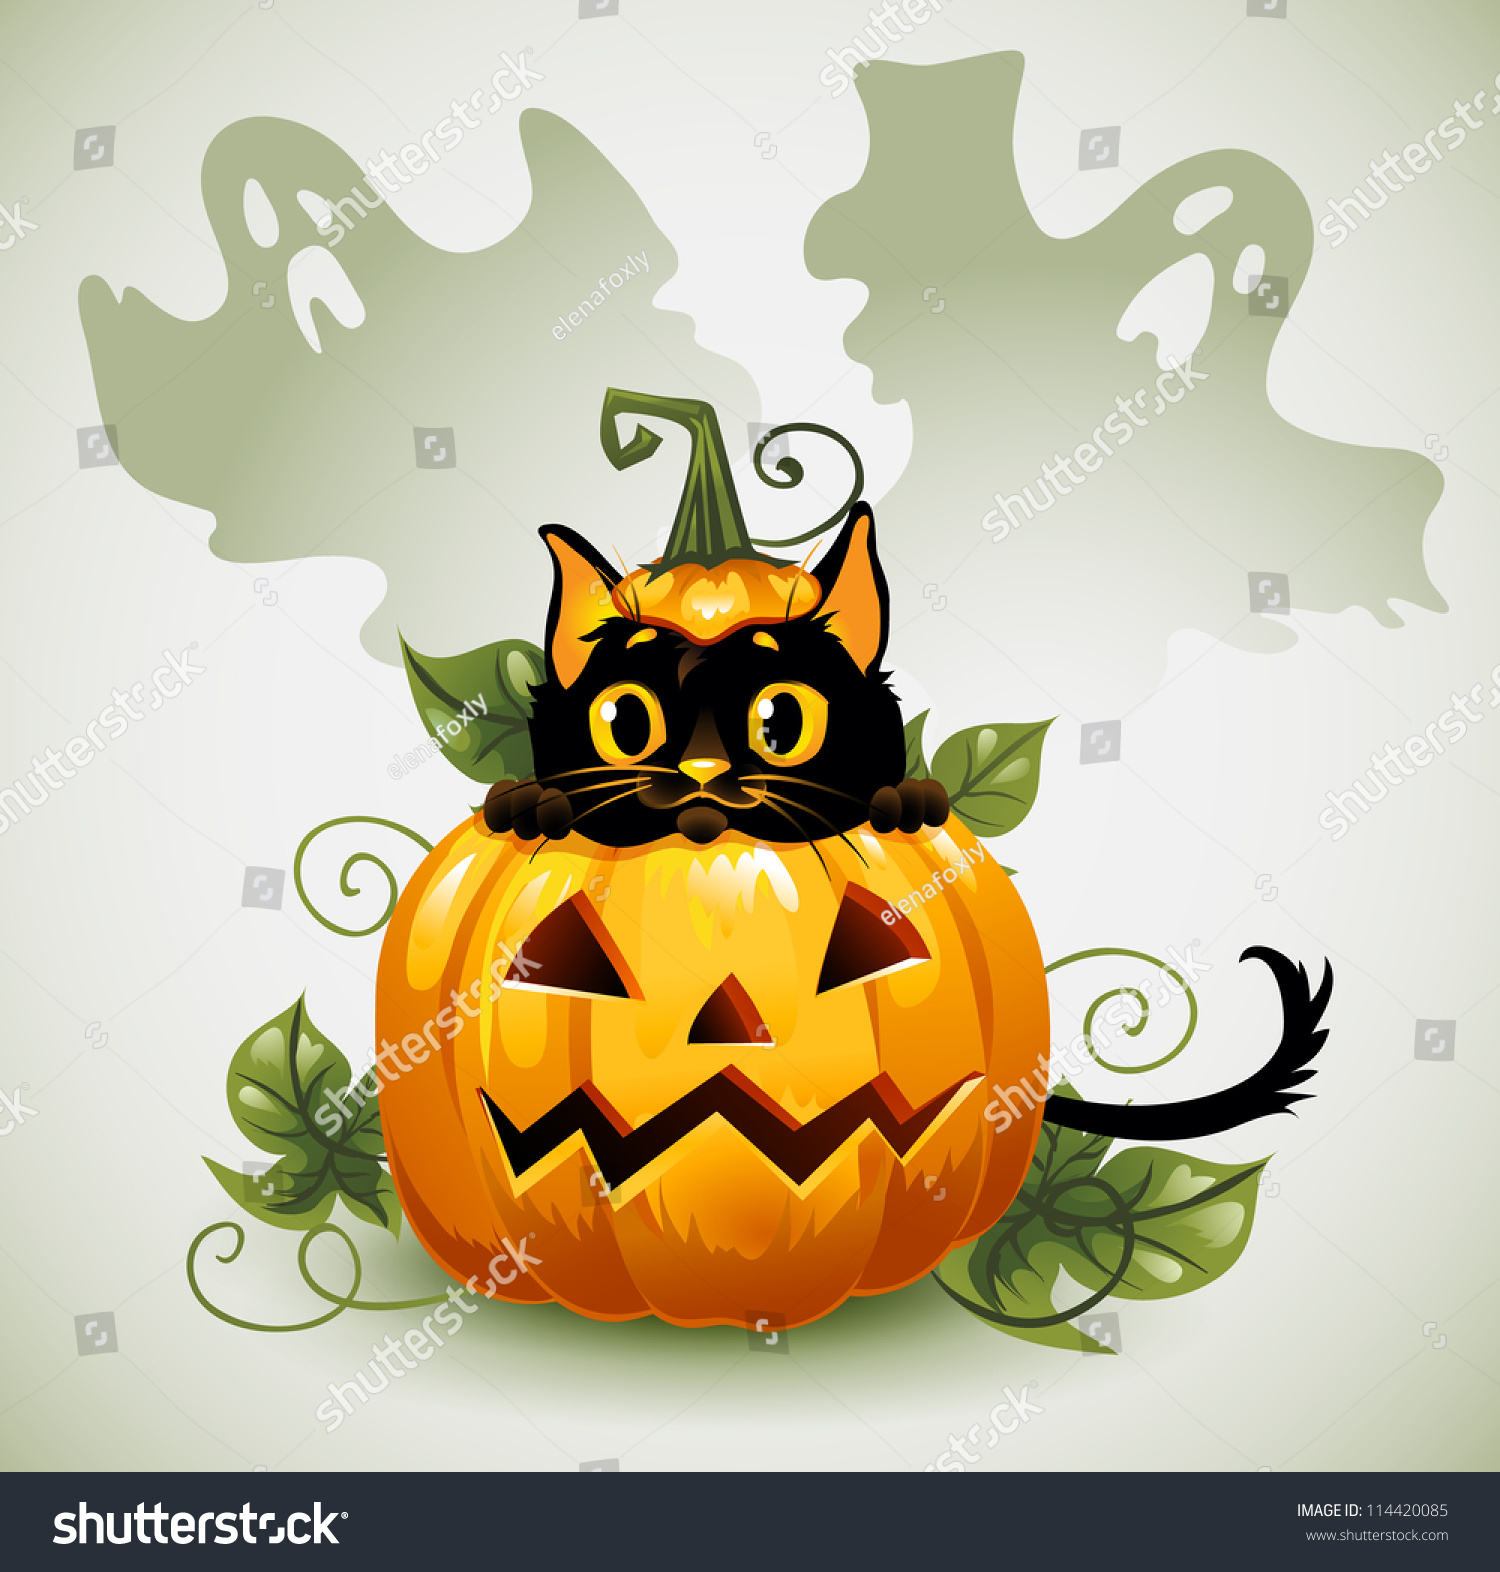 Perfect Black Cat In A Halloween Pumpkin And Ghost. Background Is Separate.